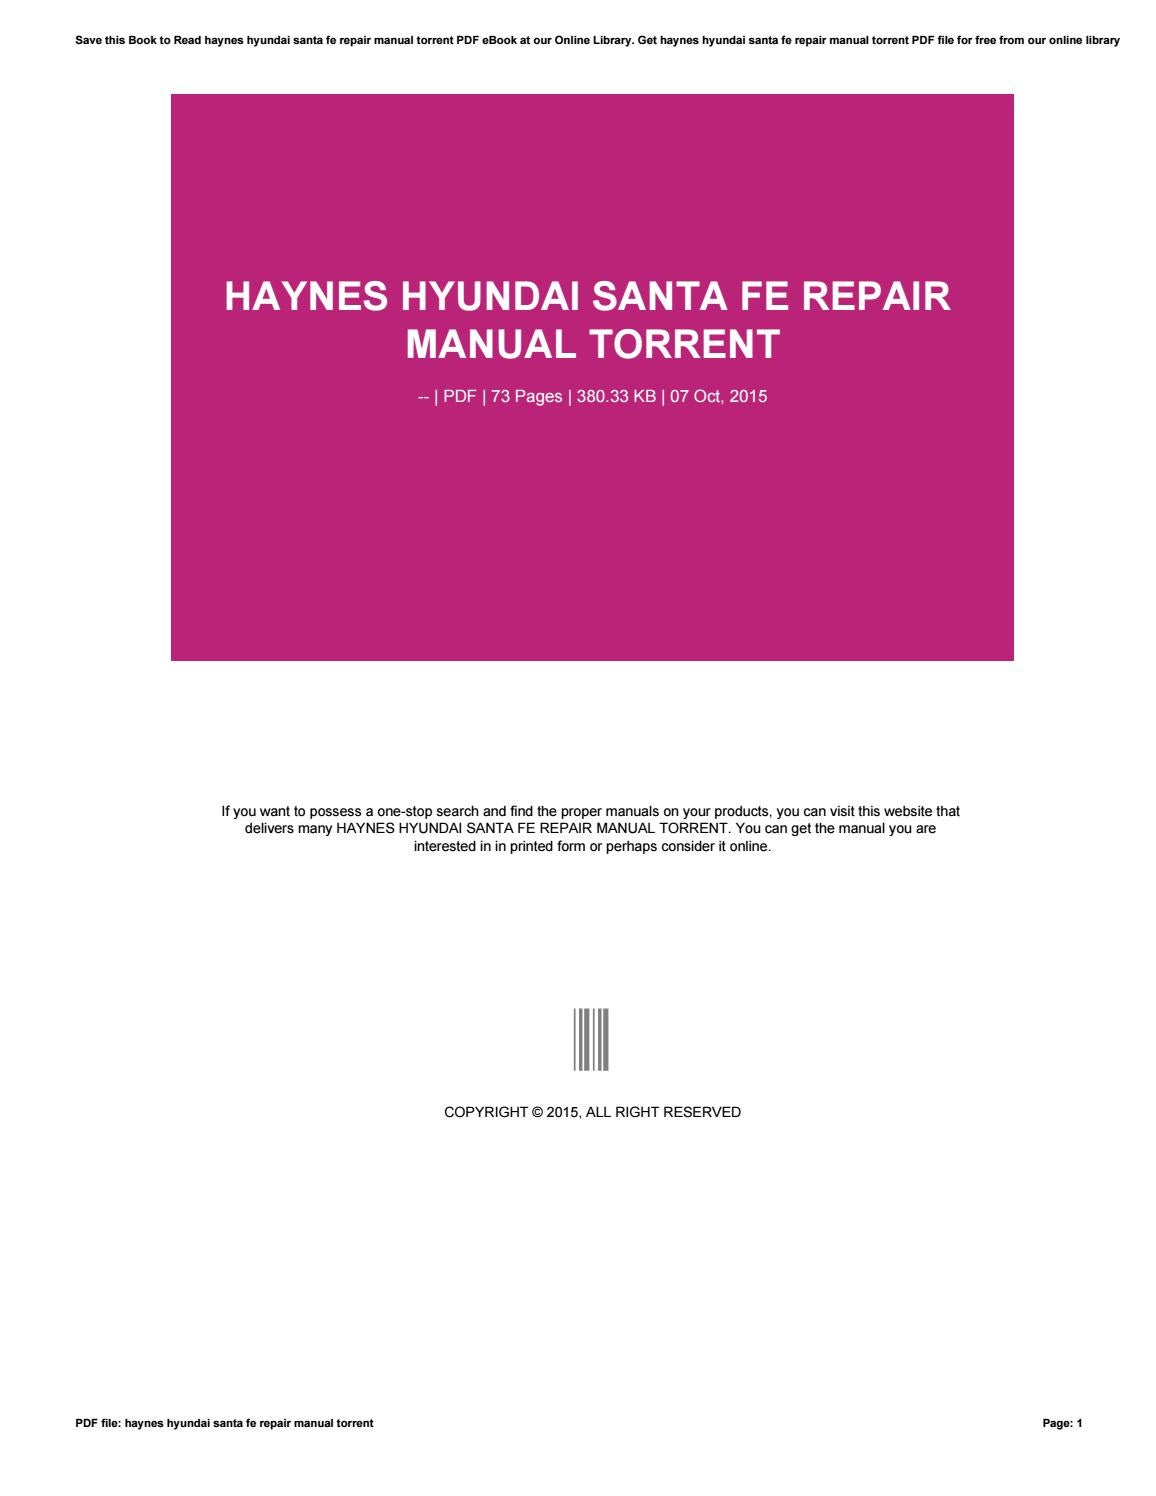 Haynes Hyundai Santa Fe Repair Manual Torrent By E4573